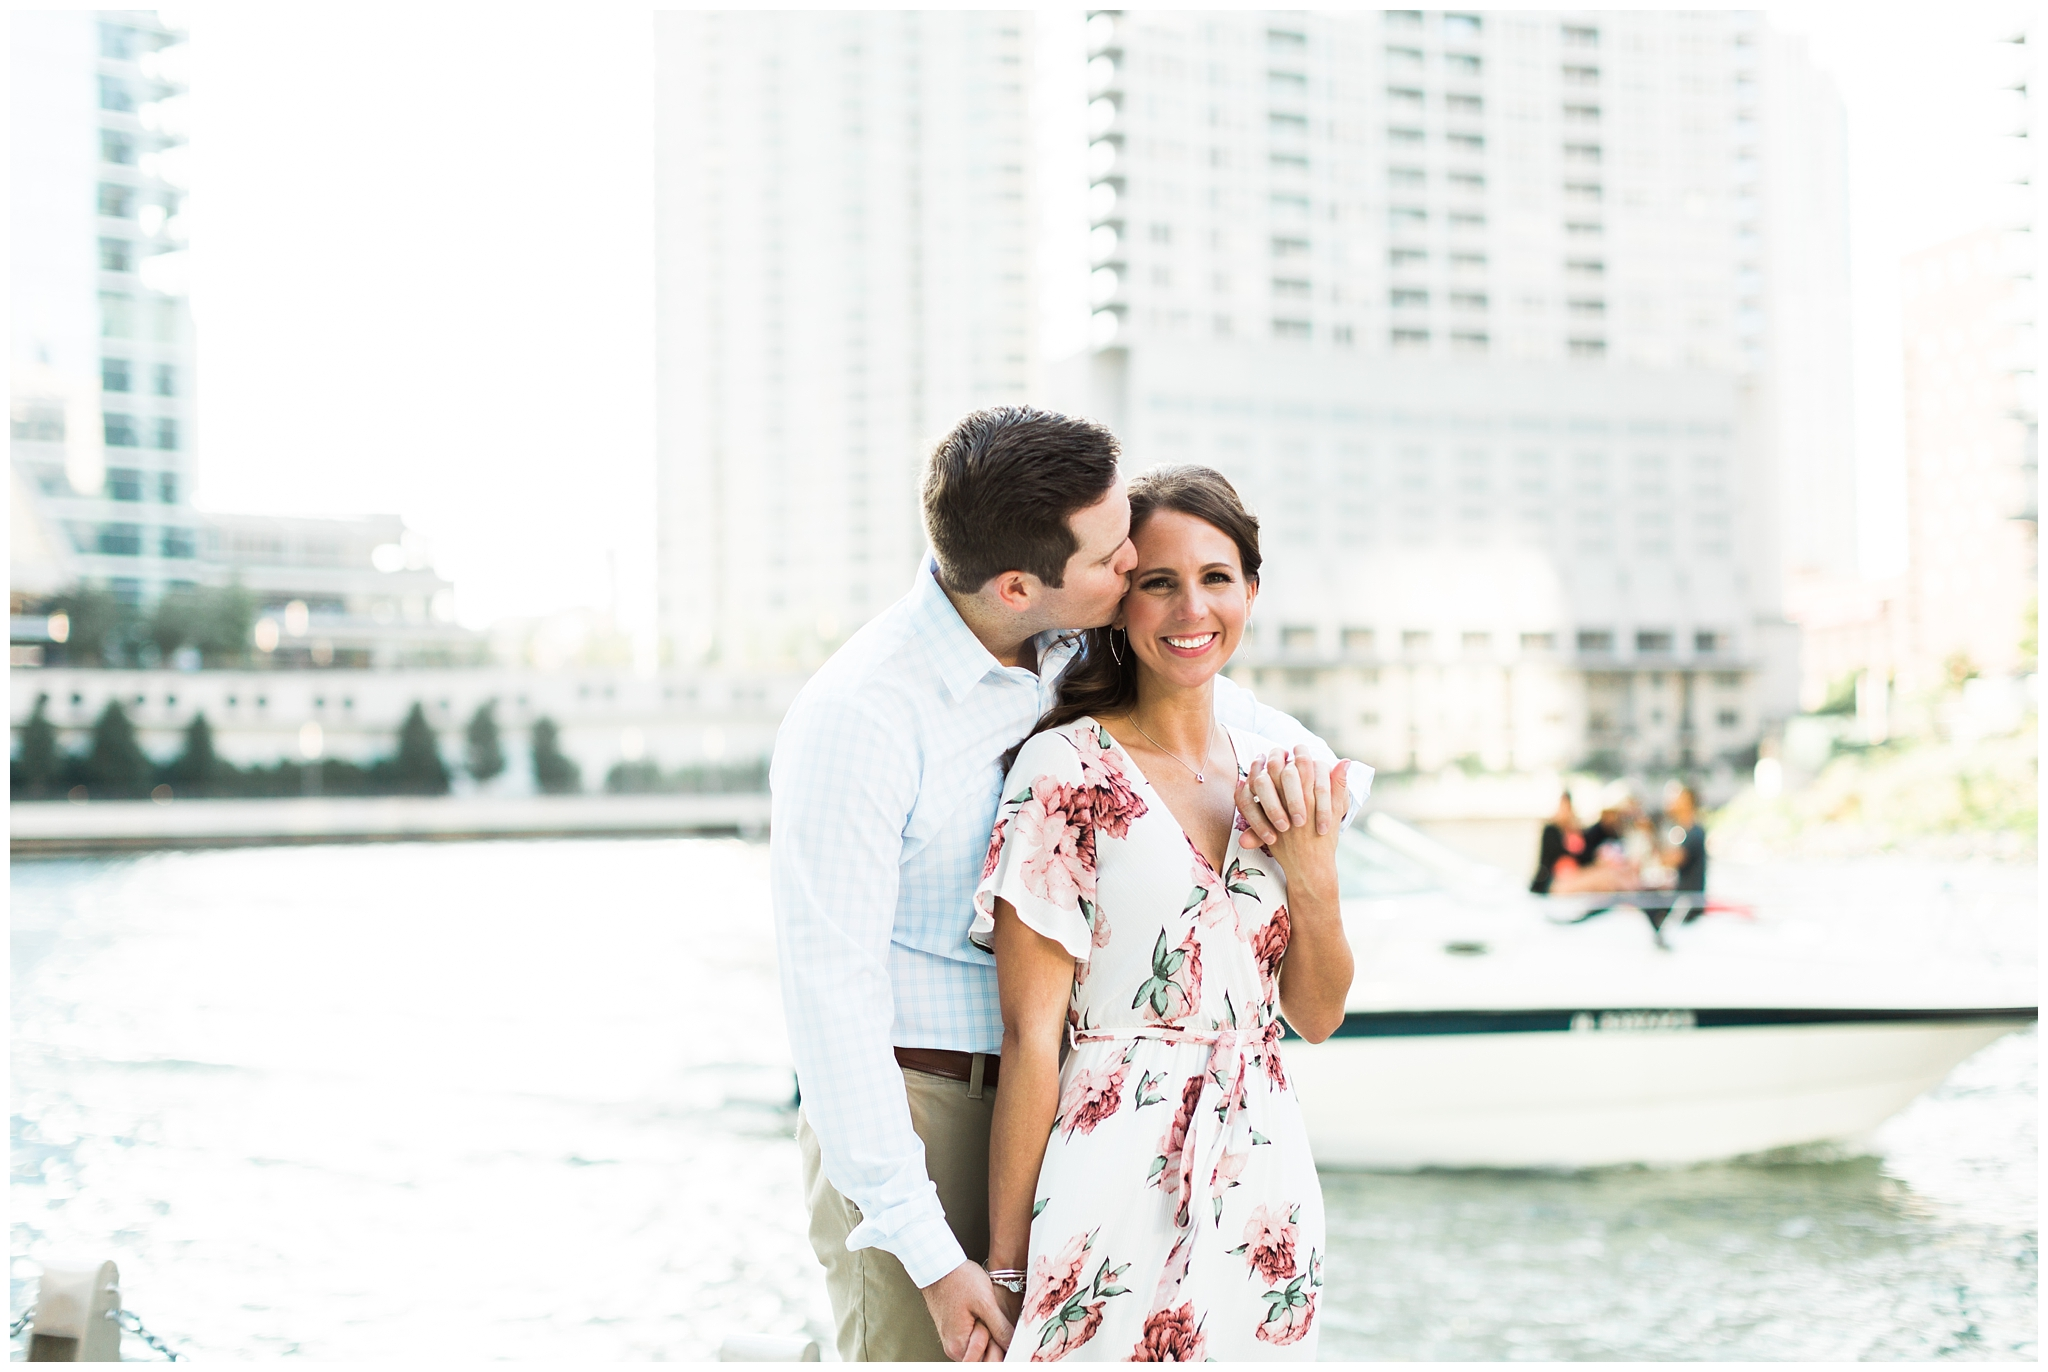 chicagoengagementsession_northavebeachengagementsession_northavebeach_northavenuebeach_northavenuebeachengagementsession_chicagoriverwalk_chicagoriverwalkengagementsession_0009.jpg